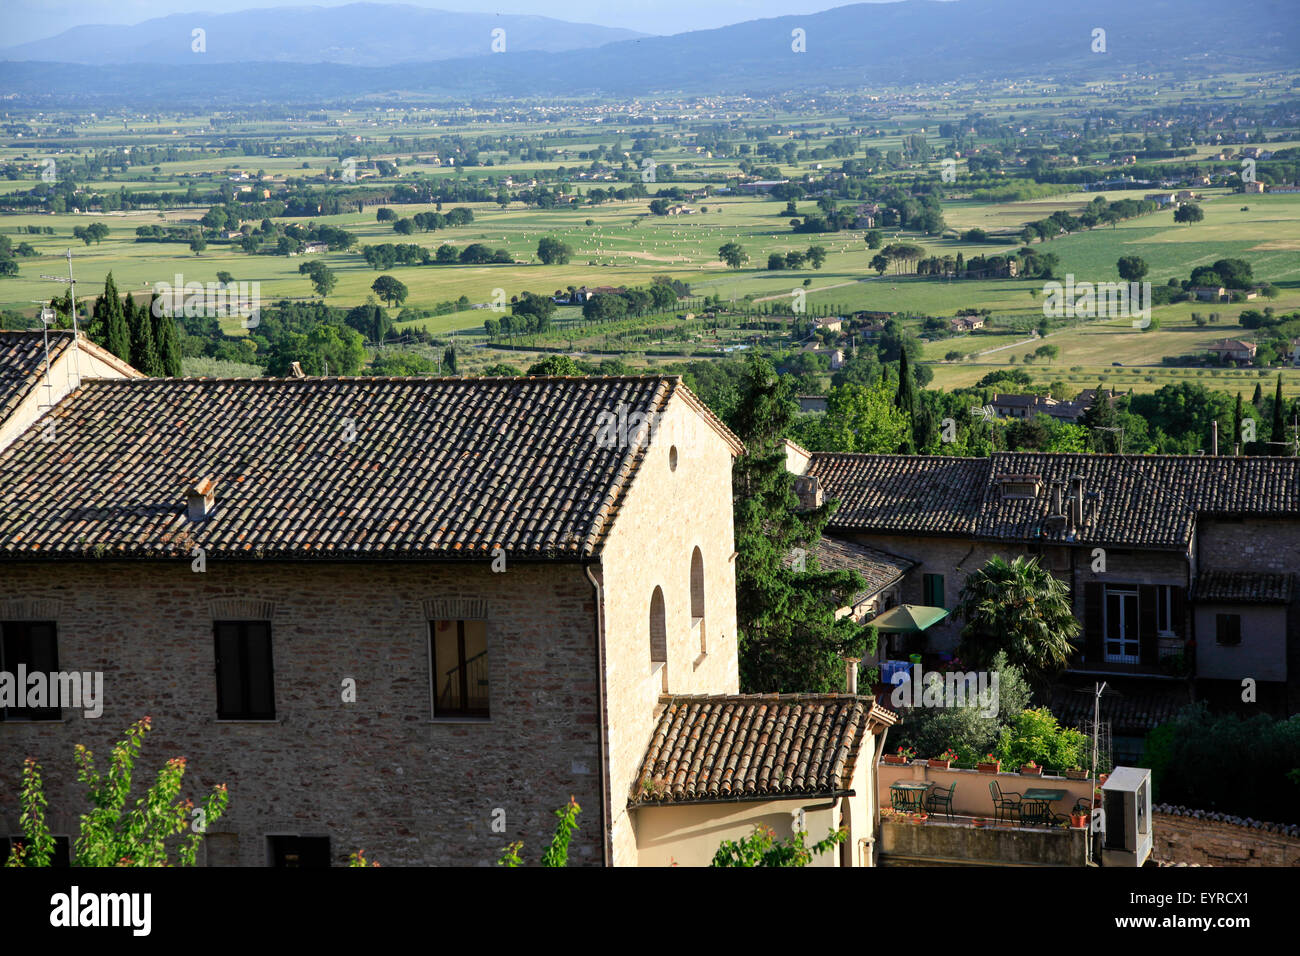 Assisi, Umbria, Italy - Stock Image